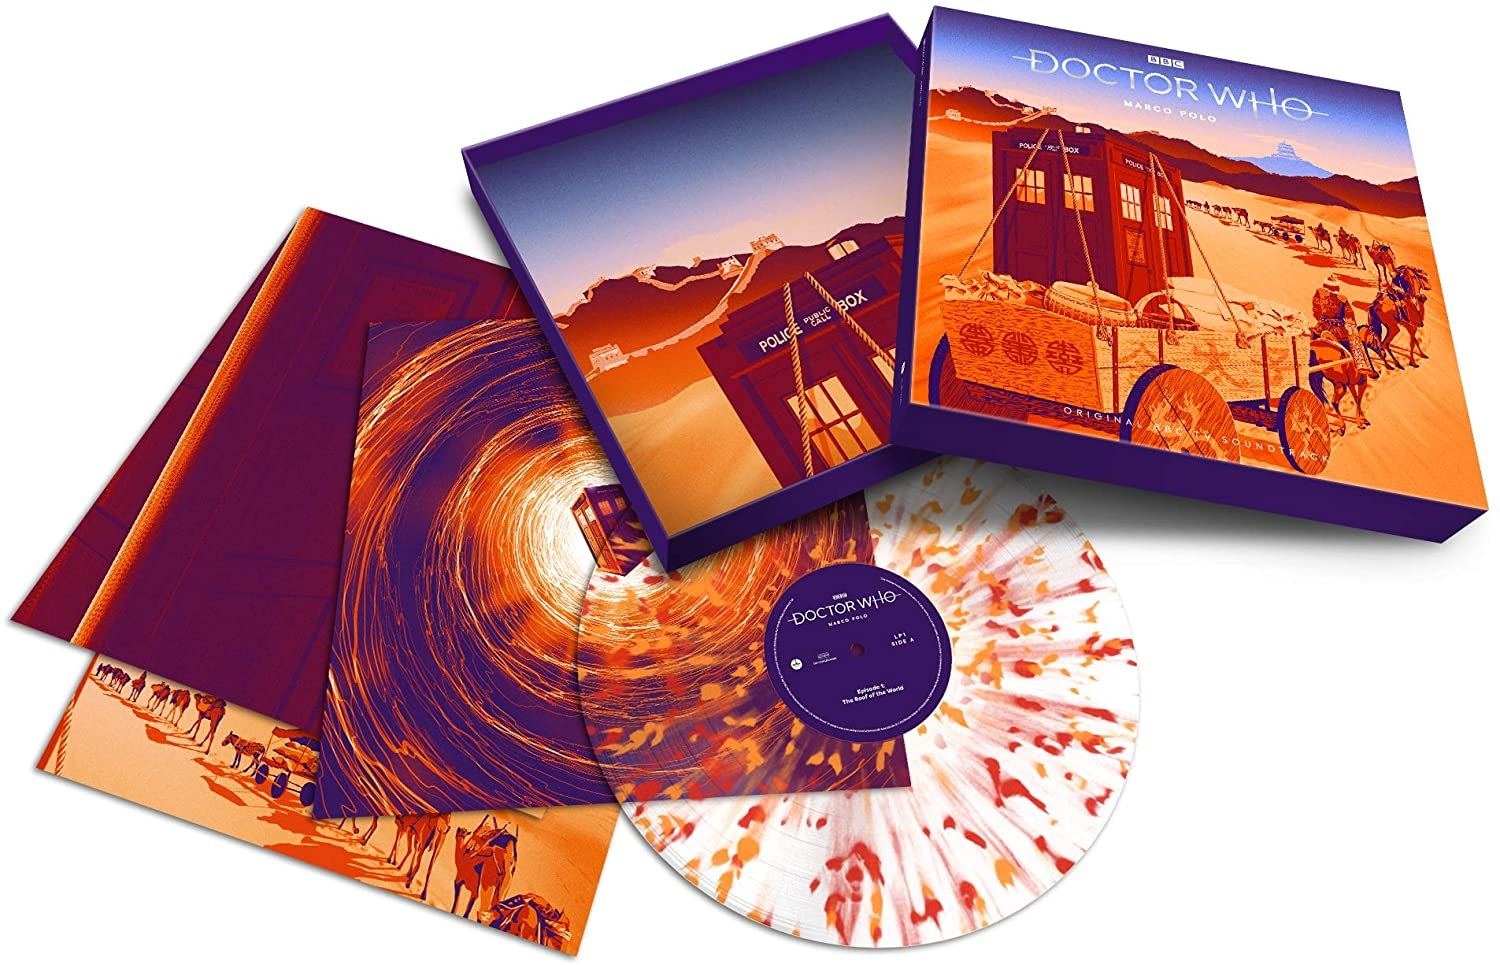 A Curse Upon the Doctor Who Companion (Or, How I Learned to Love Doctor Who on Vinyl)